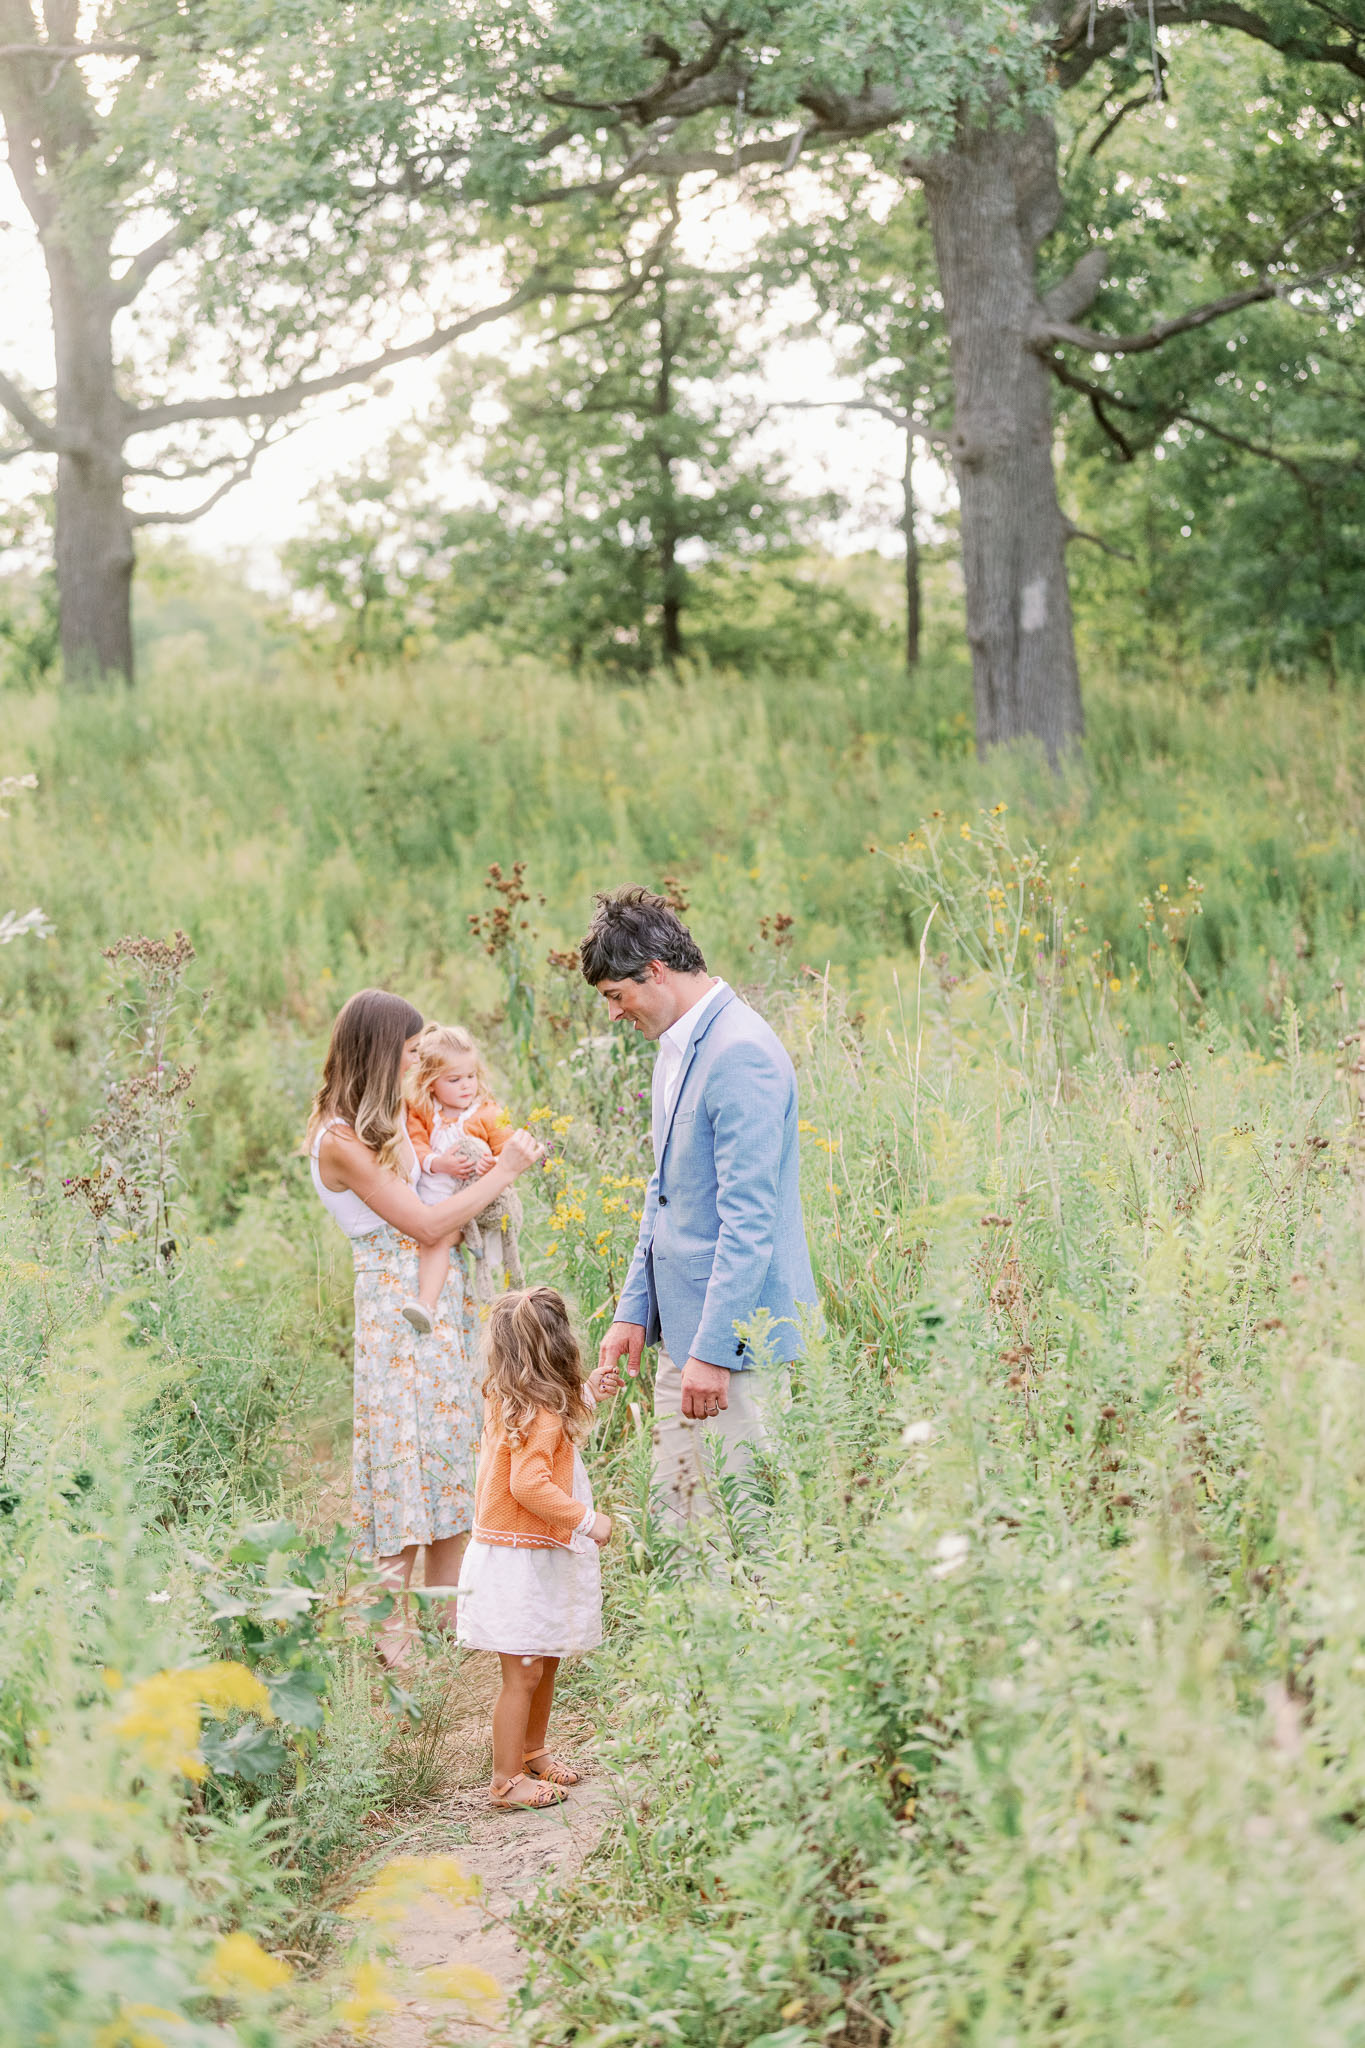 Light and Airy Chicago Naples Lifestyle Family Photographer – Mayslake Forest Preserve Family Photos-55